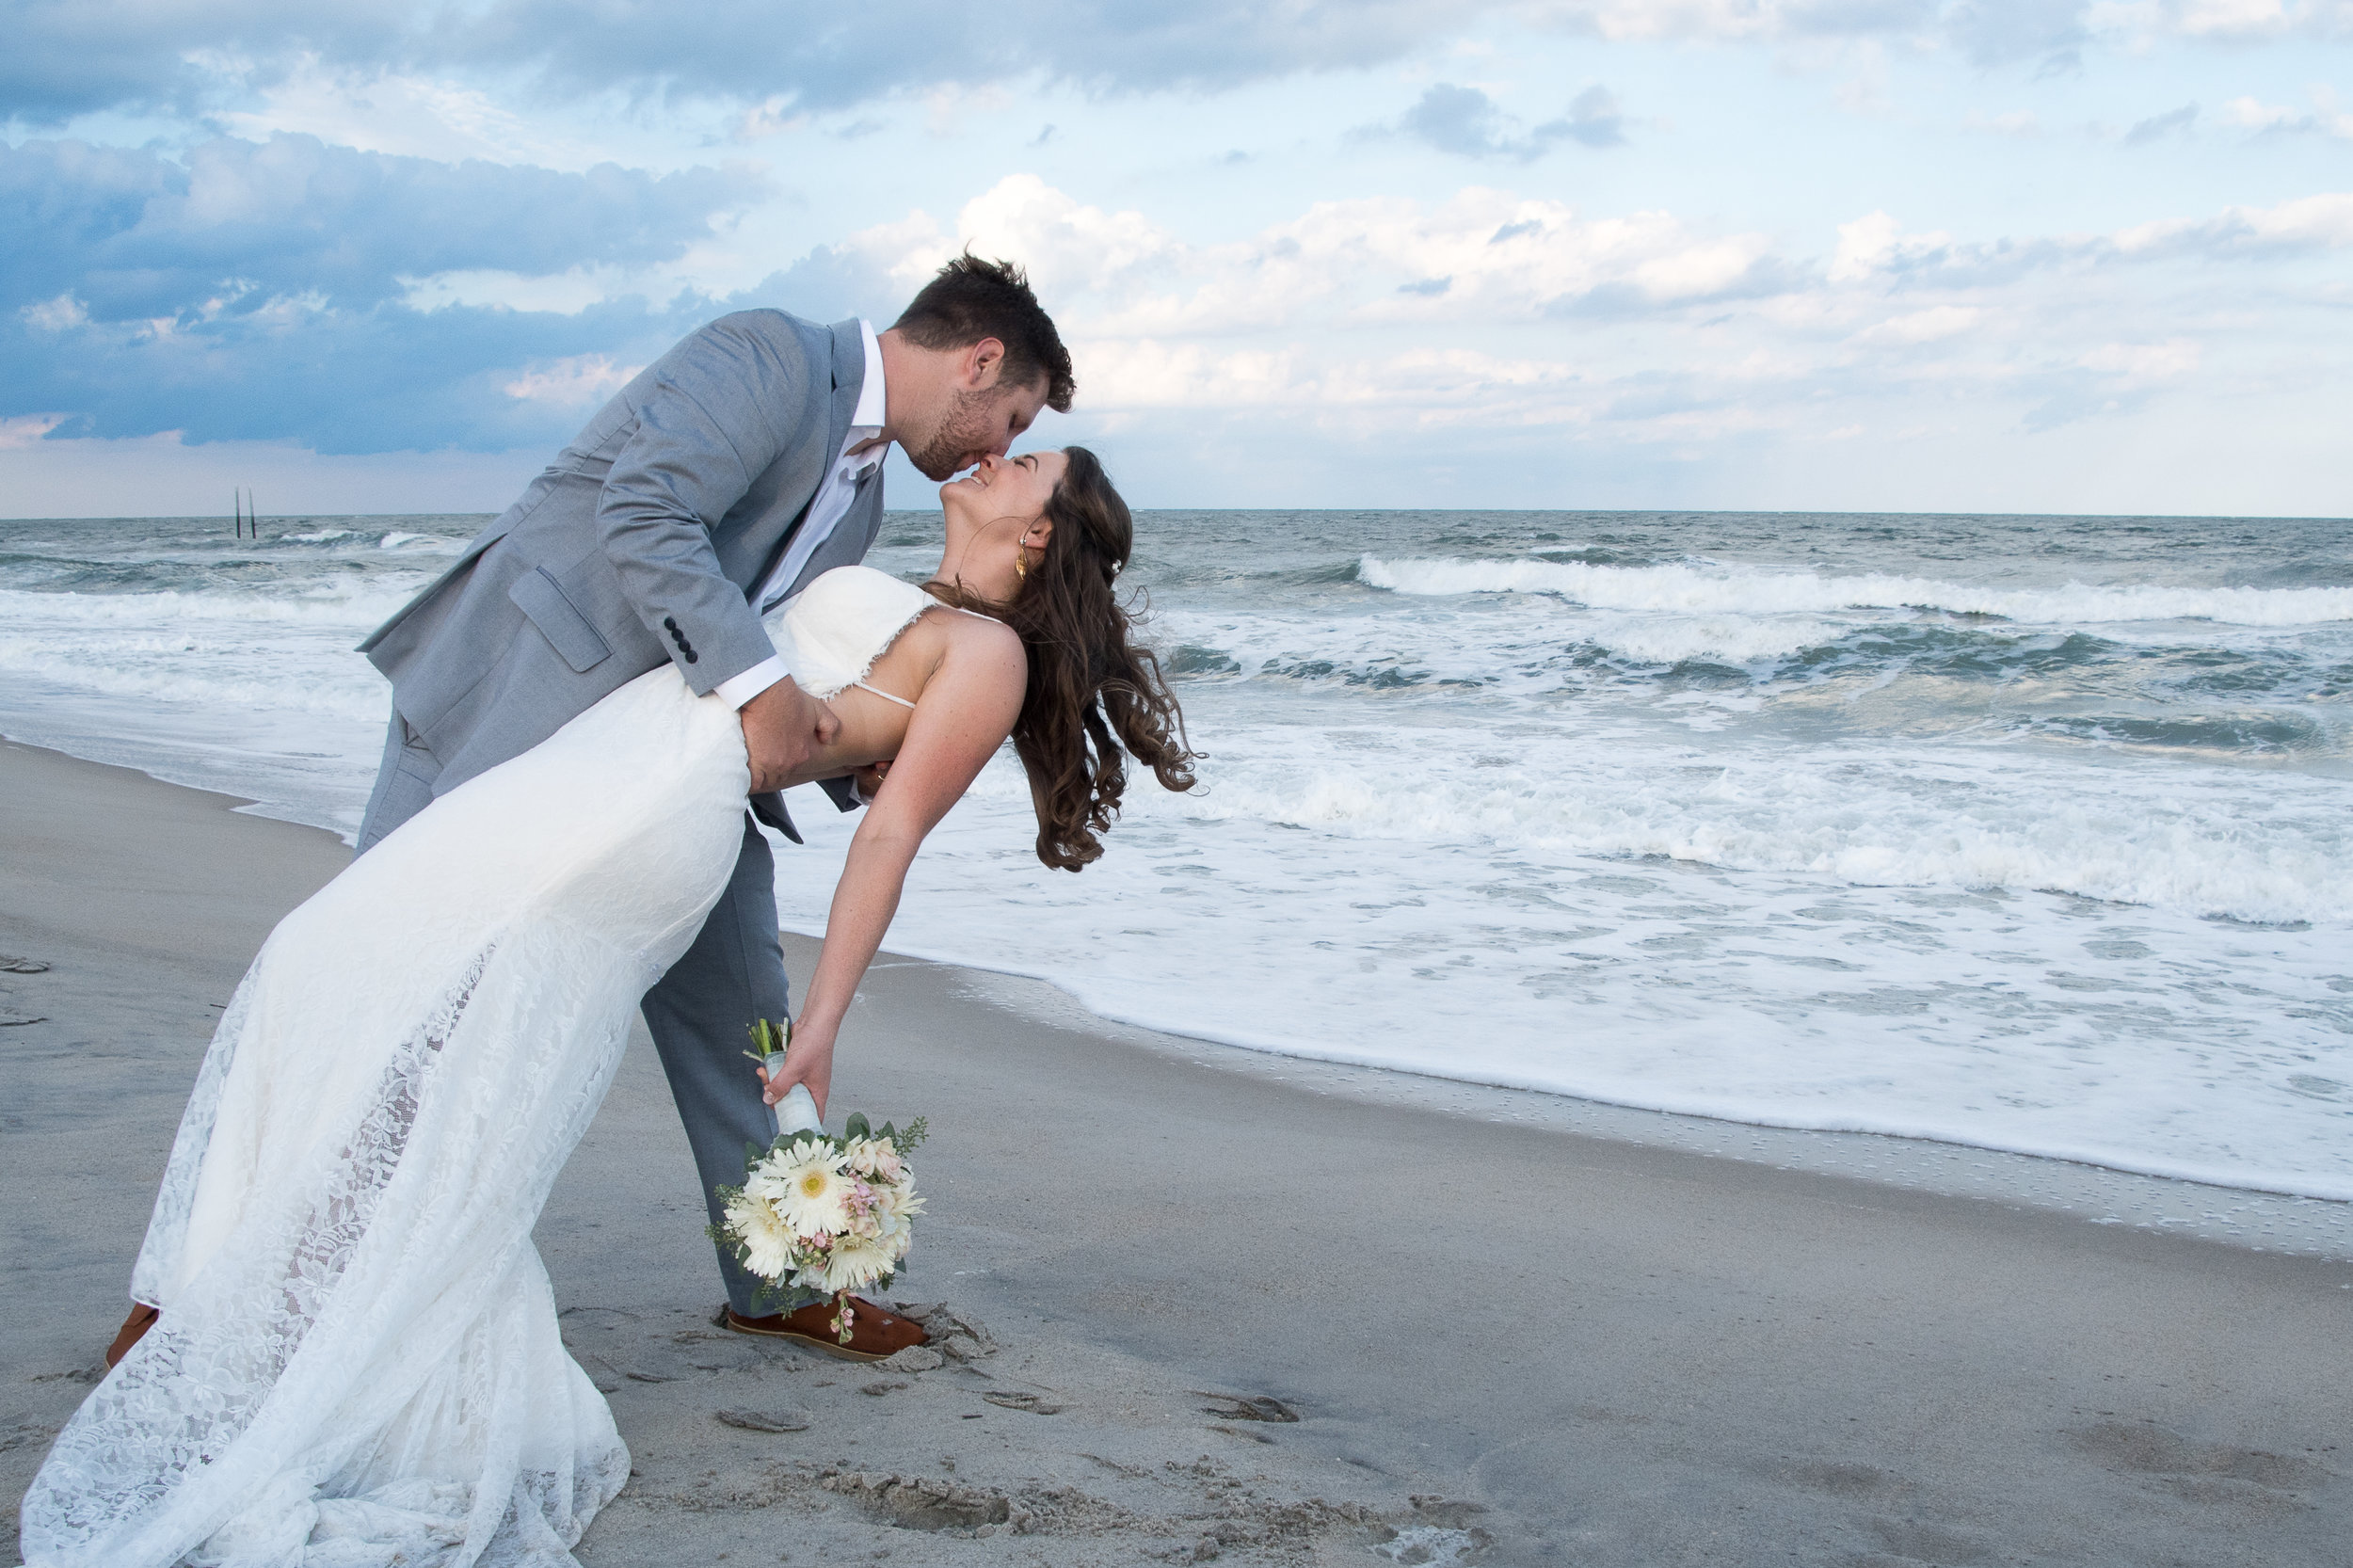 - A classic pose, the Groom dipping his new Bride on the beach after the wedding ceremony.